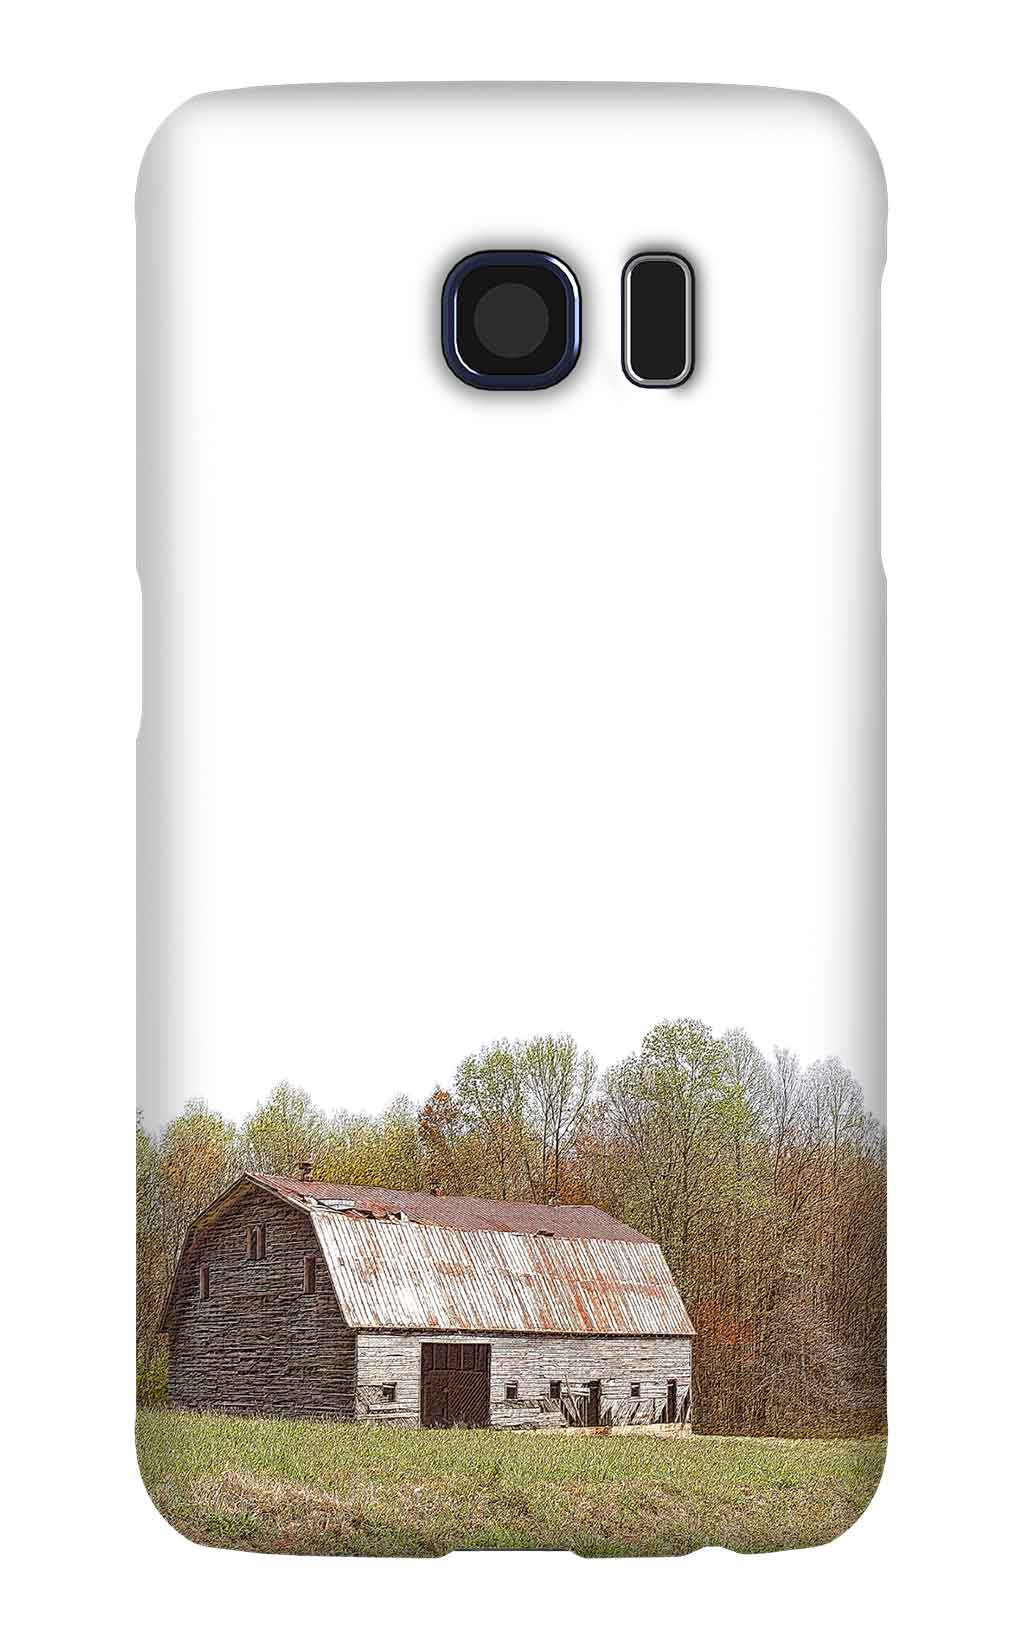 Product, Cellphone Case: Amityville – Gabled wooden barn in front of fall foliage